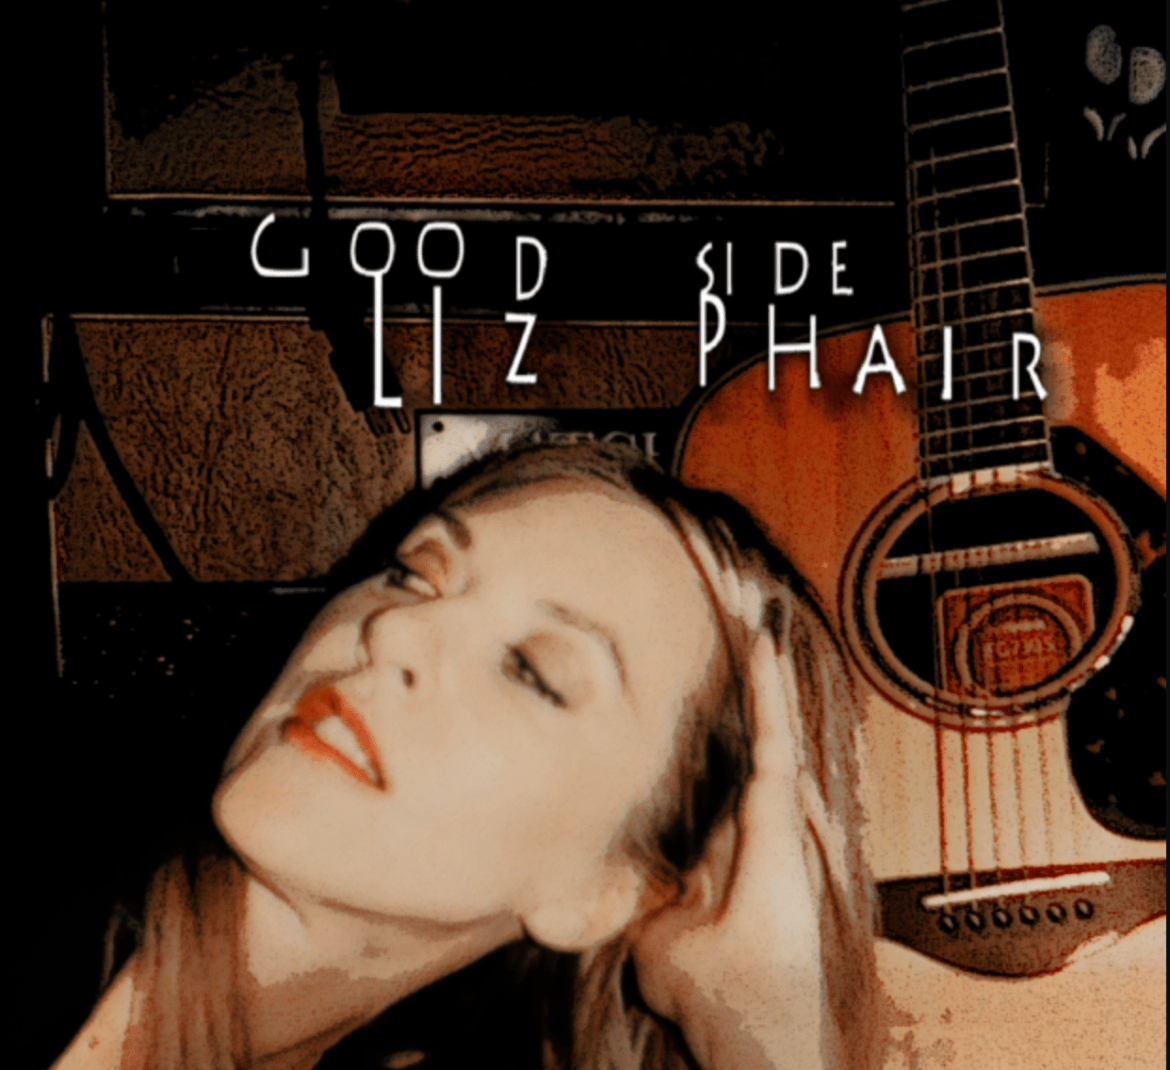 A caucasian female looking to her left side and showing the right side of her face with a guitar next to her.